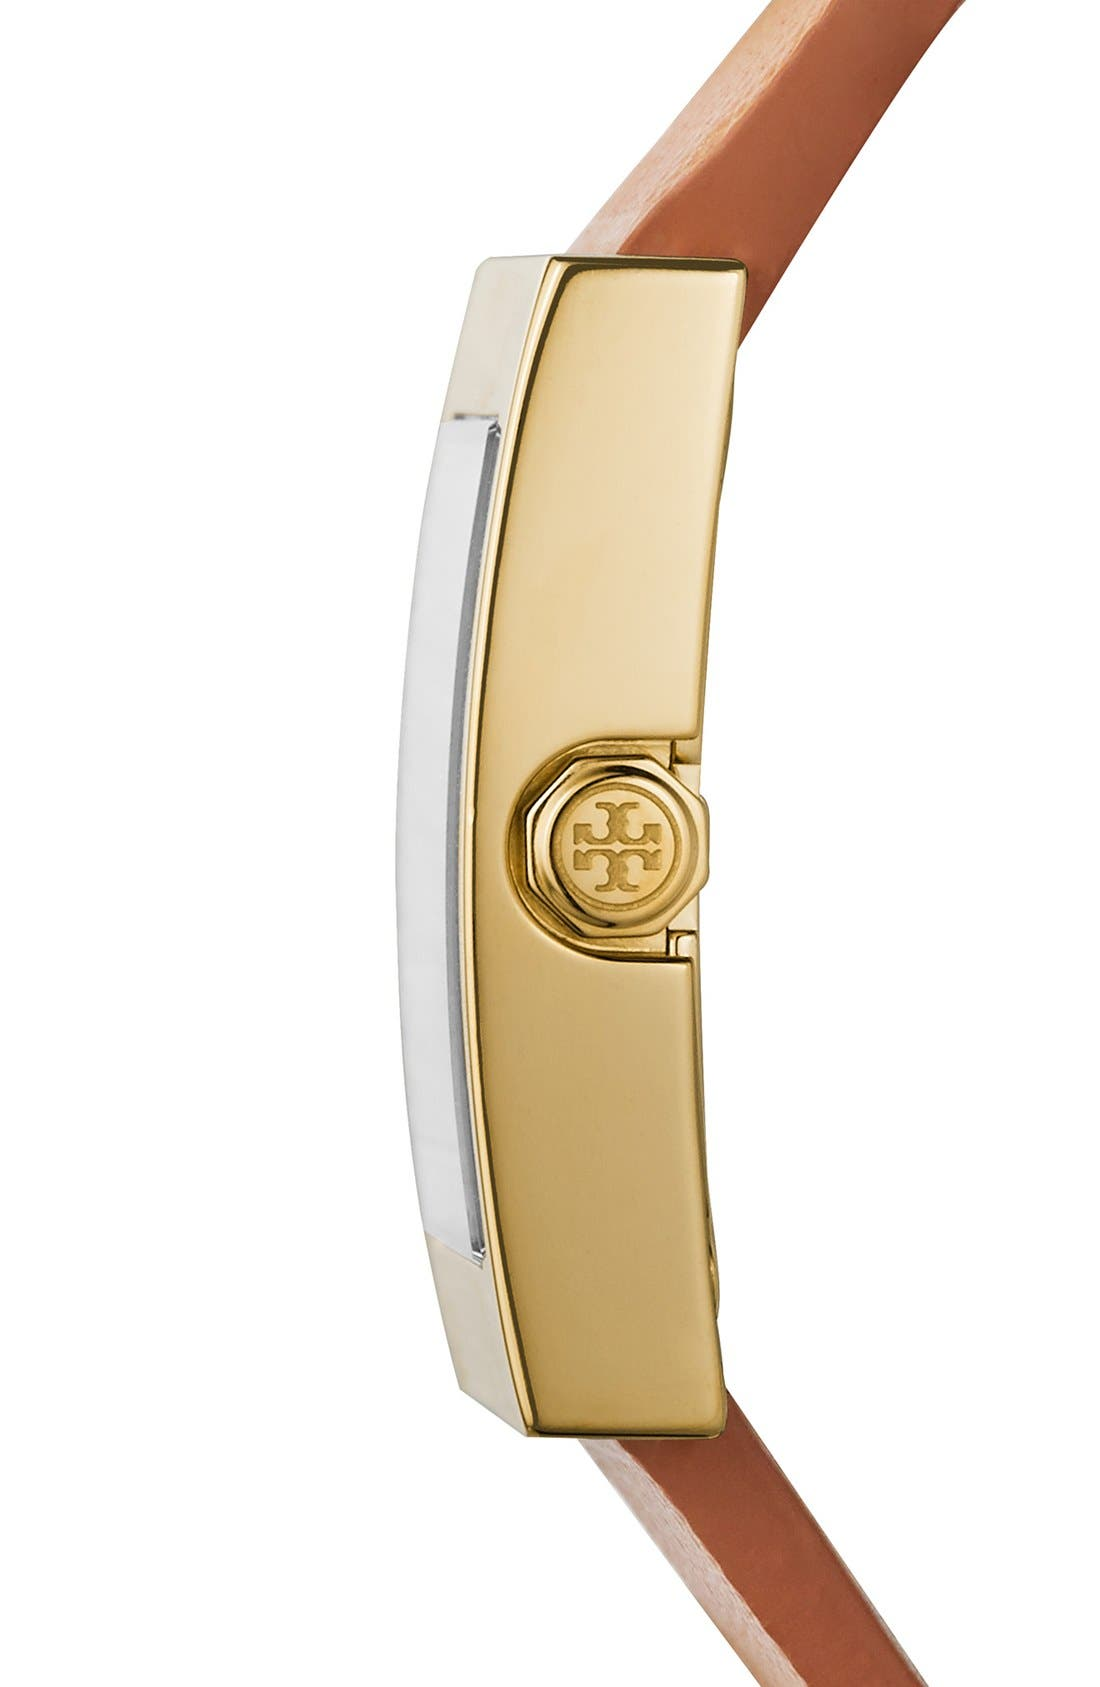 Alternate Image 3  - Tory Burch 'Buddy Classic' Rectangular Saffiano Leather Strap Watch, 26mm x 32mm